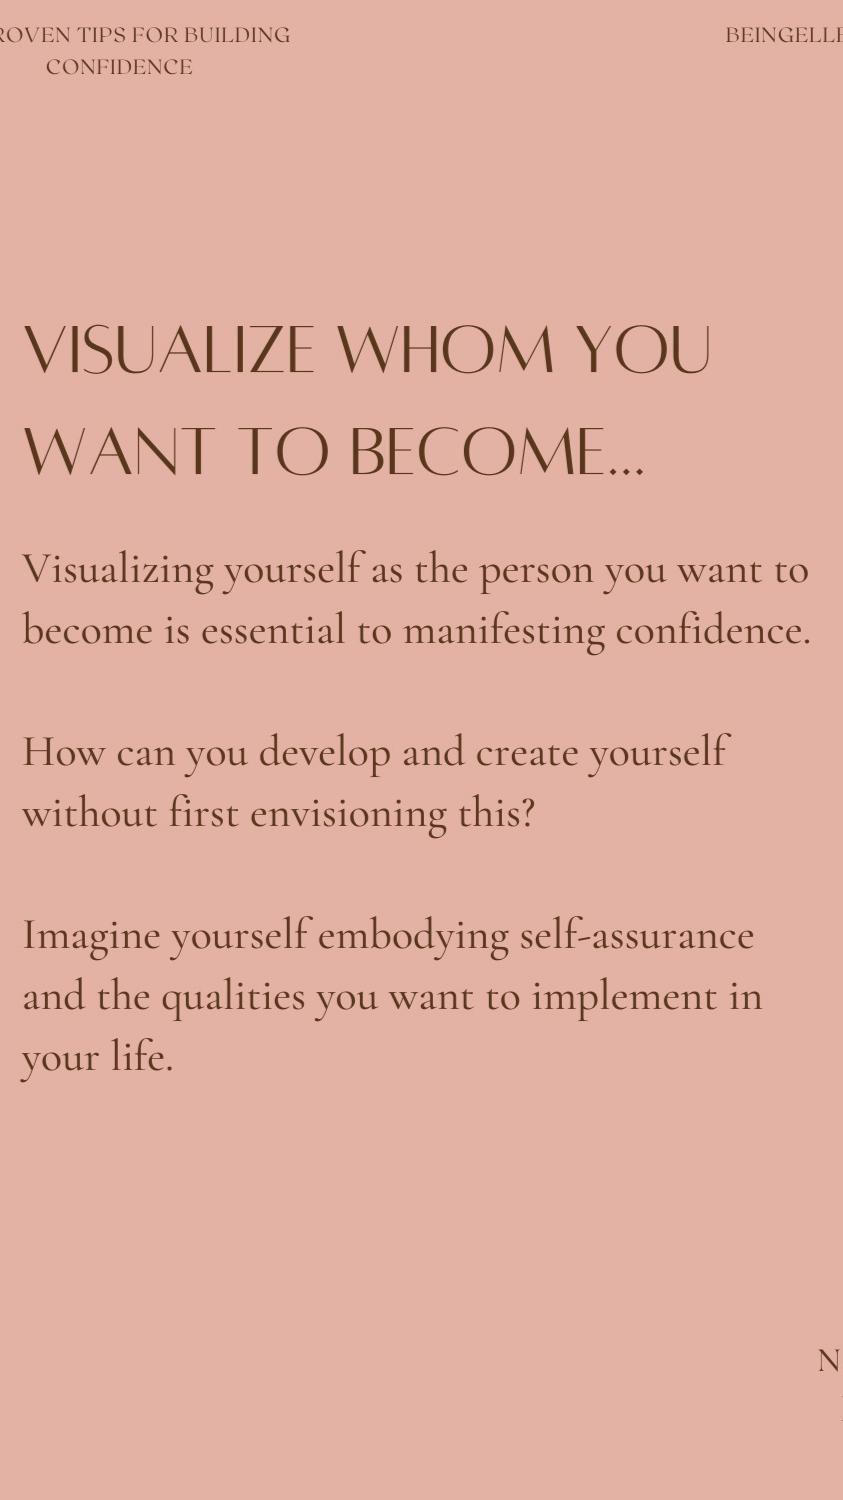 7 Proven Tips You Need to Know for Self-Confidence And Manifesting a Beautiful Life.